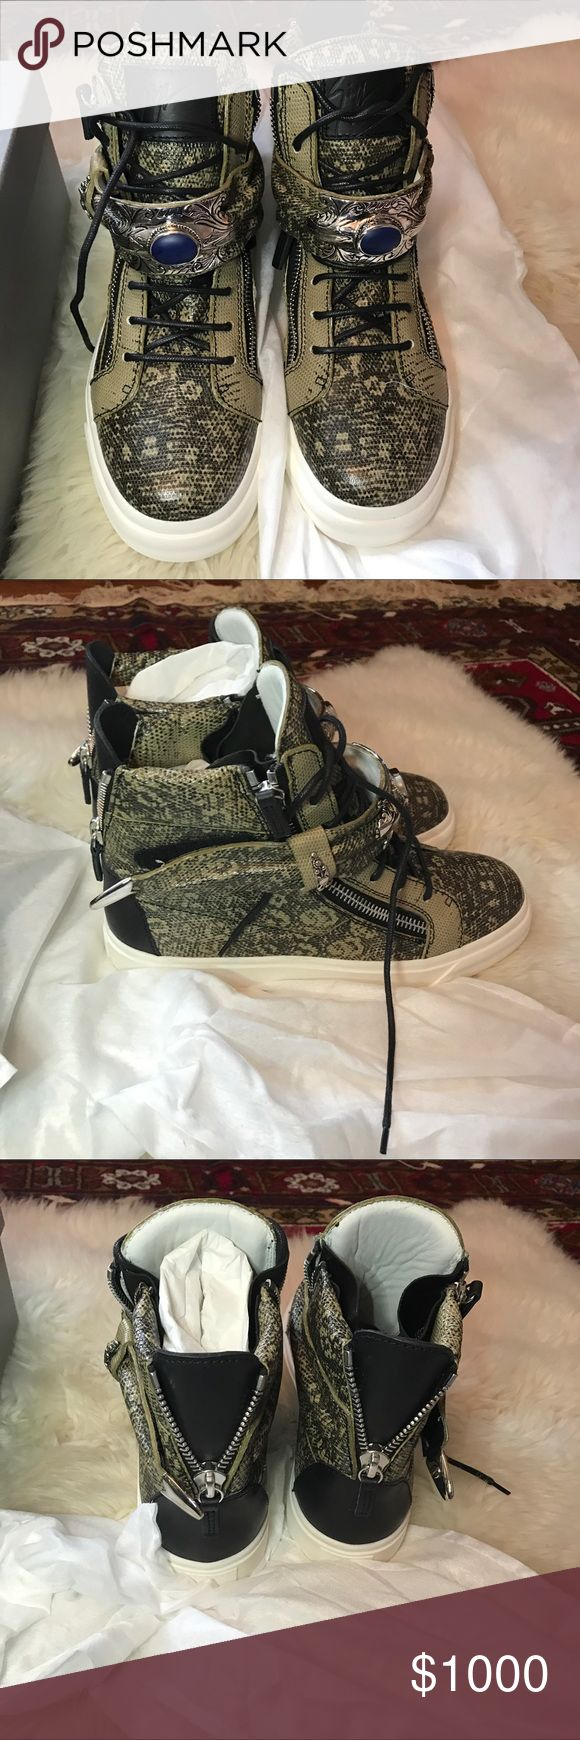 Giuseppe Zanotti sneakers Never worn Giuseppe Zanotti sneakers. Size 41. Comes with card of authenticity. This shoe is for both men and women in women size they would be 9-9.5 NWOT Giuseppe Zanotti Shoes Sneakers